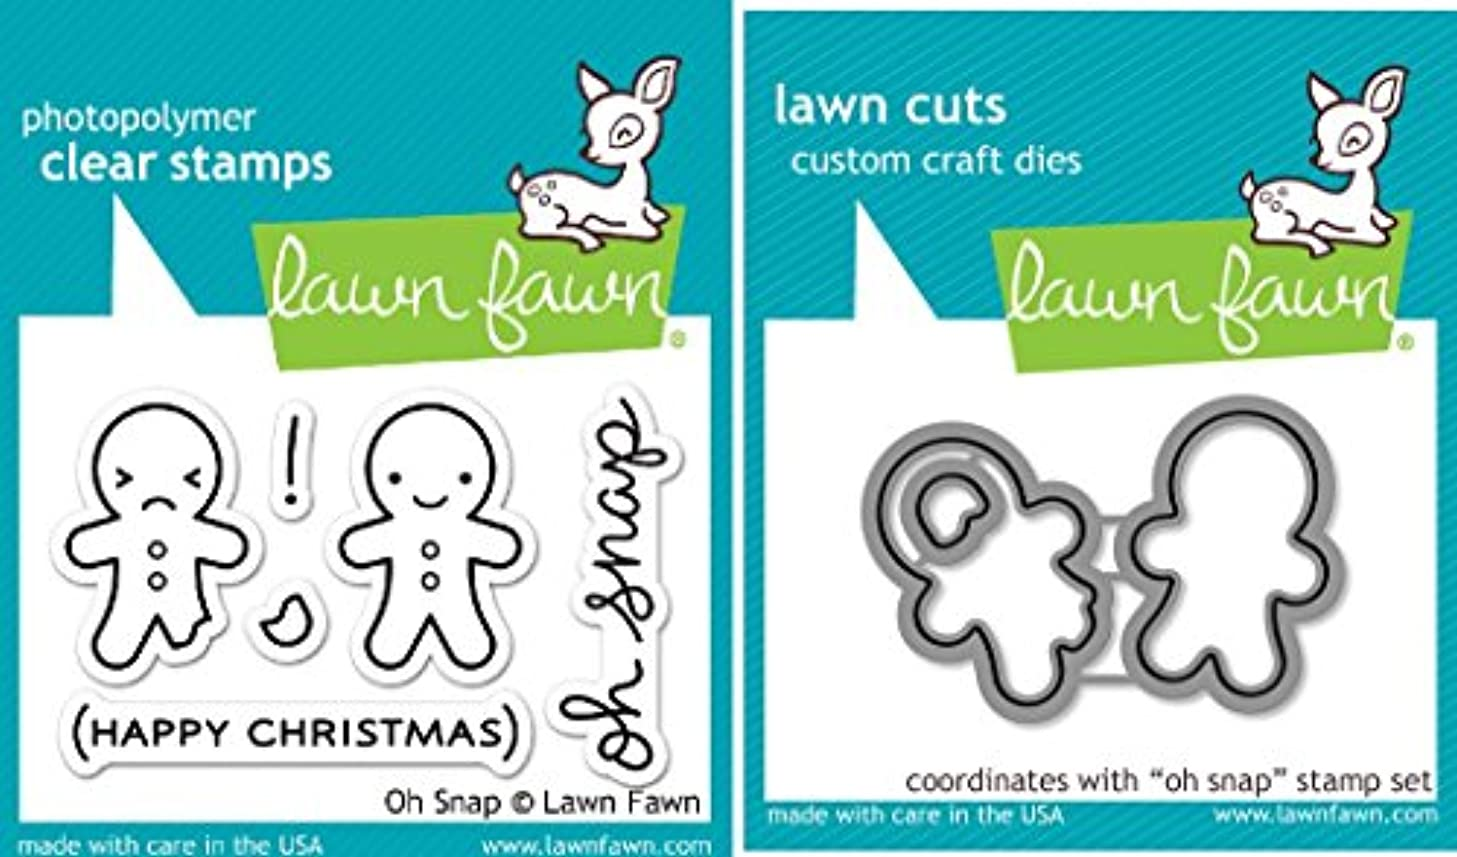 Lawn Fawn Oh Snap Clear Stamp and Die Set - Includes One Each of LF983 (Stamp) & LF984 (Die) - Bundle Of 2